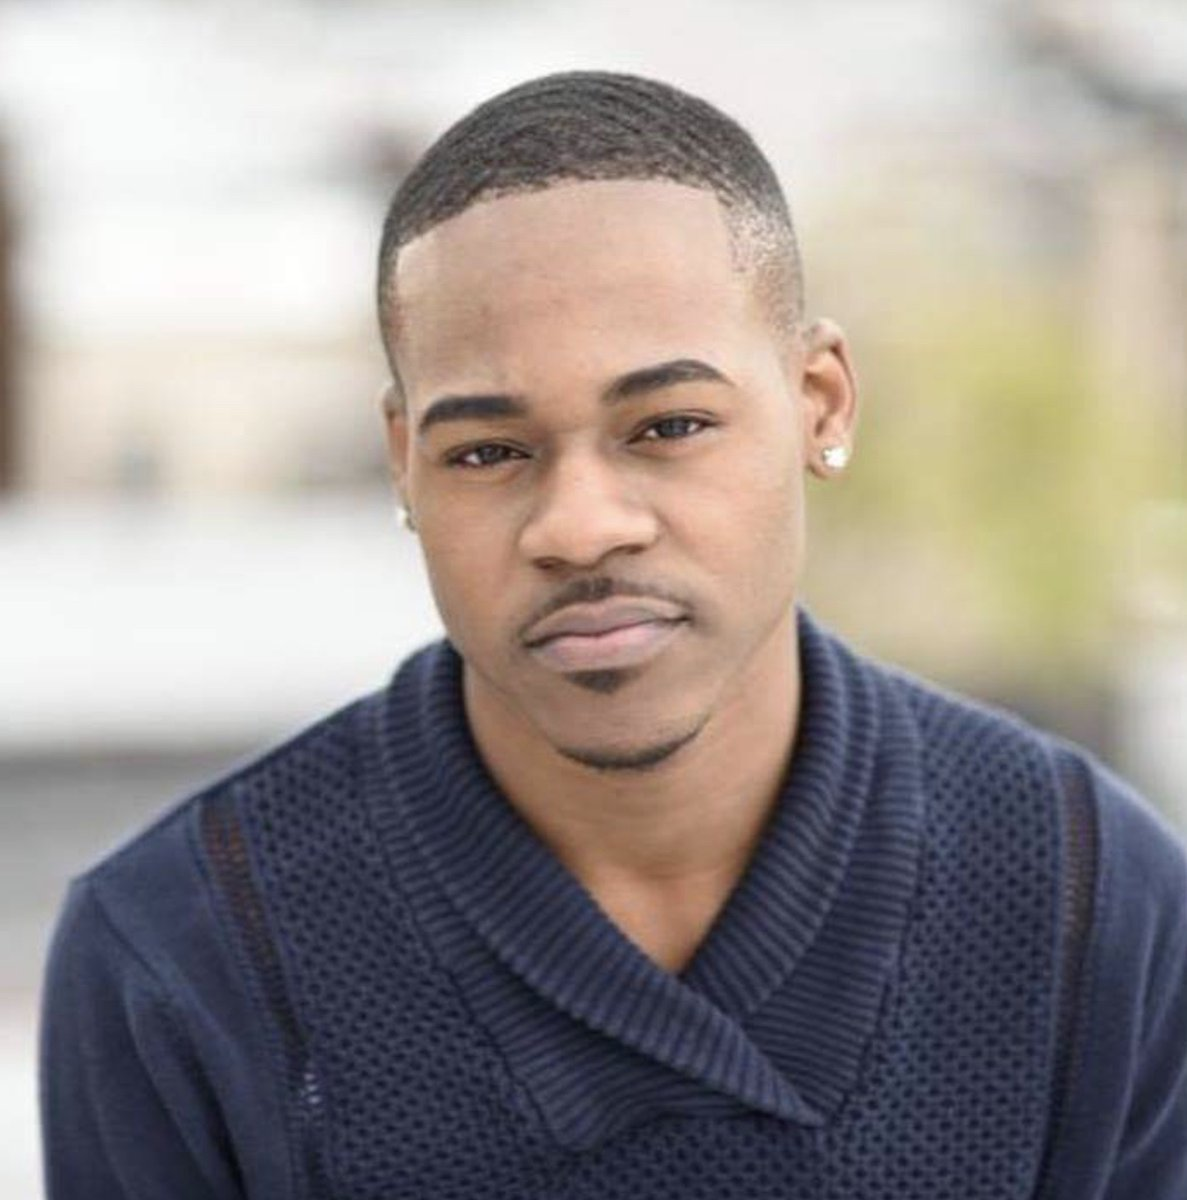 """""""You're just like poison. My affliction, I'm addicted.""""-- Beyoncé  Actor @songsbyvernard  is O'Shea Hanes, Bartender and Part-Time College Student. #asundertheseries #mancrushmonday #soapopera #digitalseries #filmingsoon #season2pic.twitter.com/zsPiUIzOdu"""